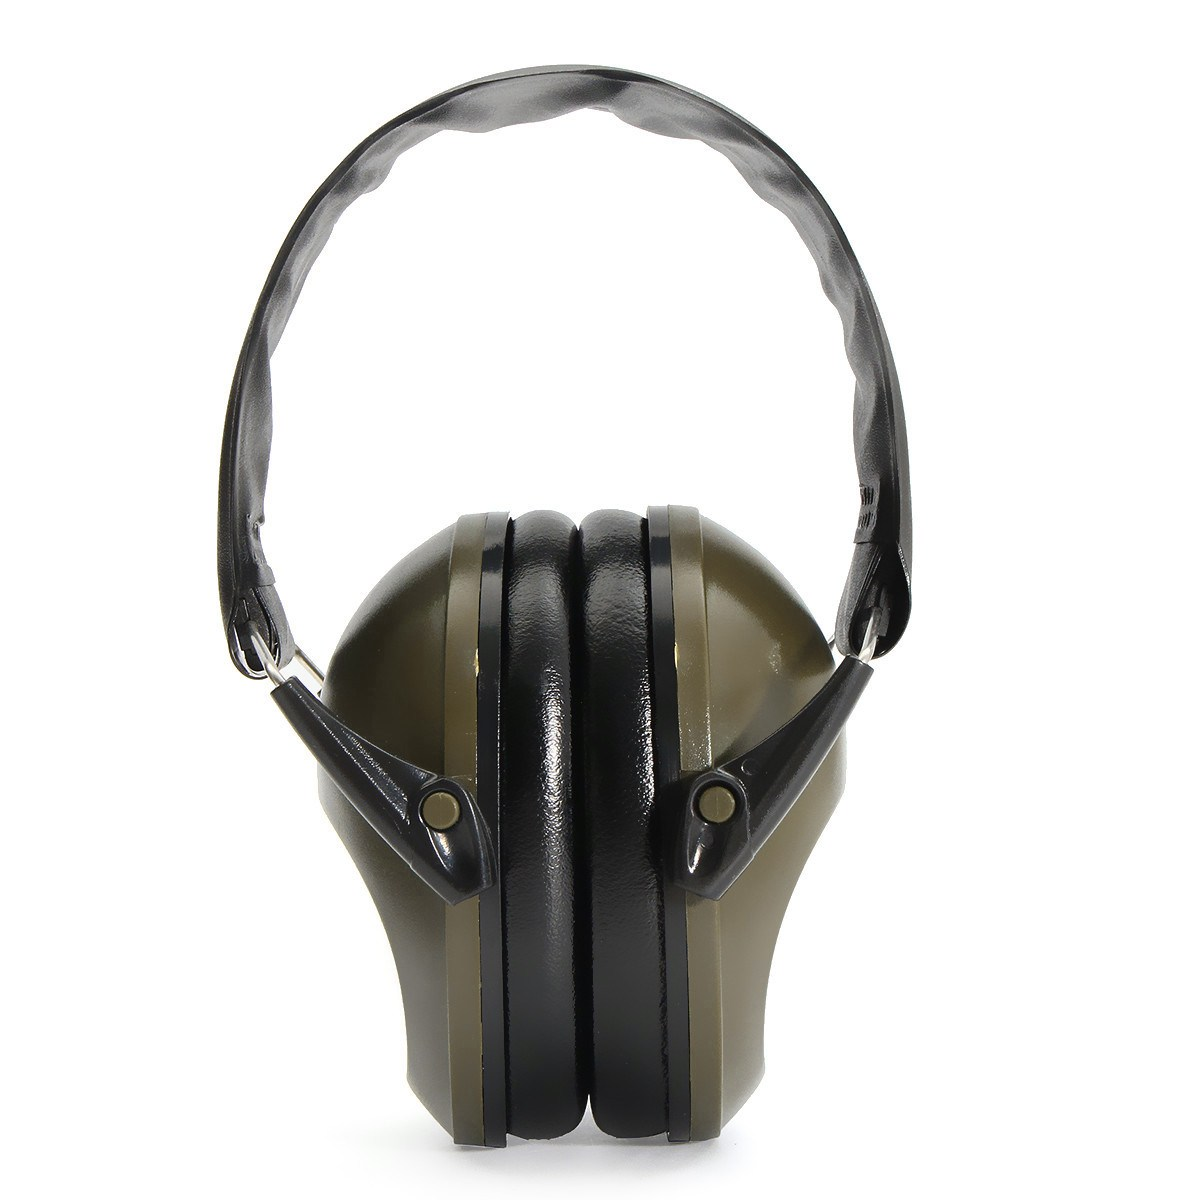 NEW Safurance Anti-noise Ear Muff Hearing Protection Soundproof Shooting Earmuffs Earphone Noise Redution Workplace Safety